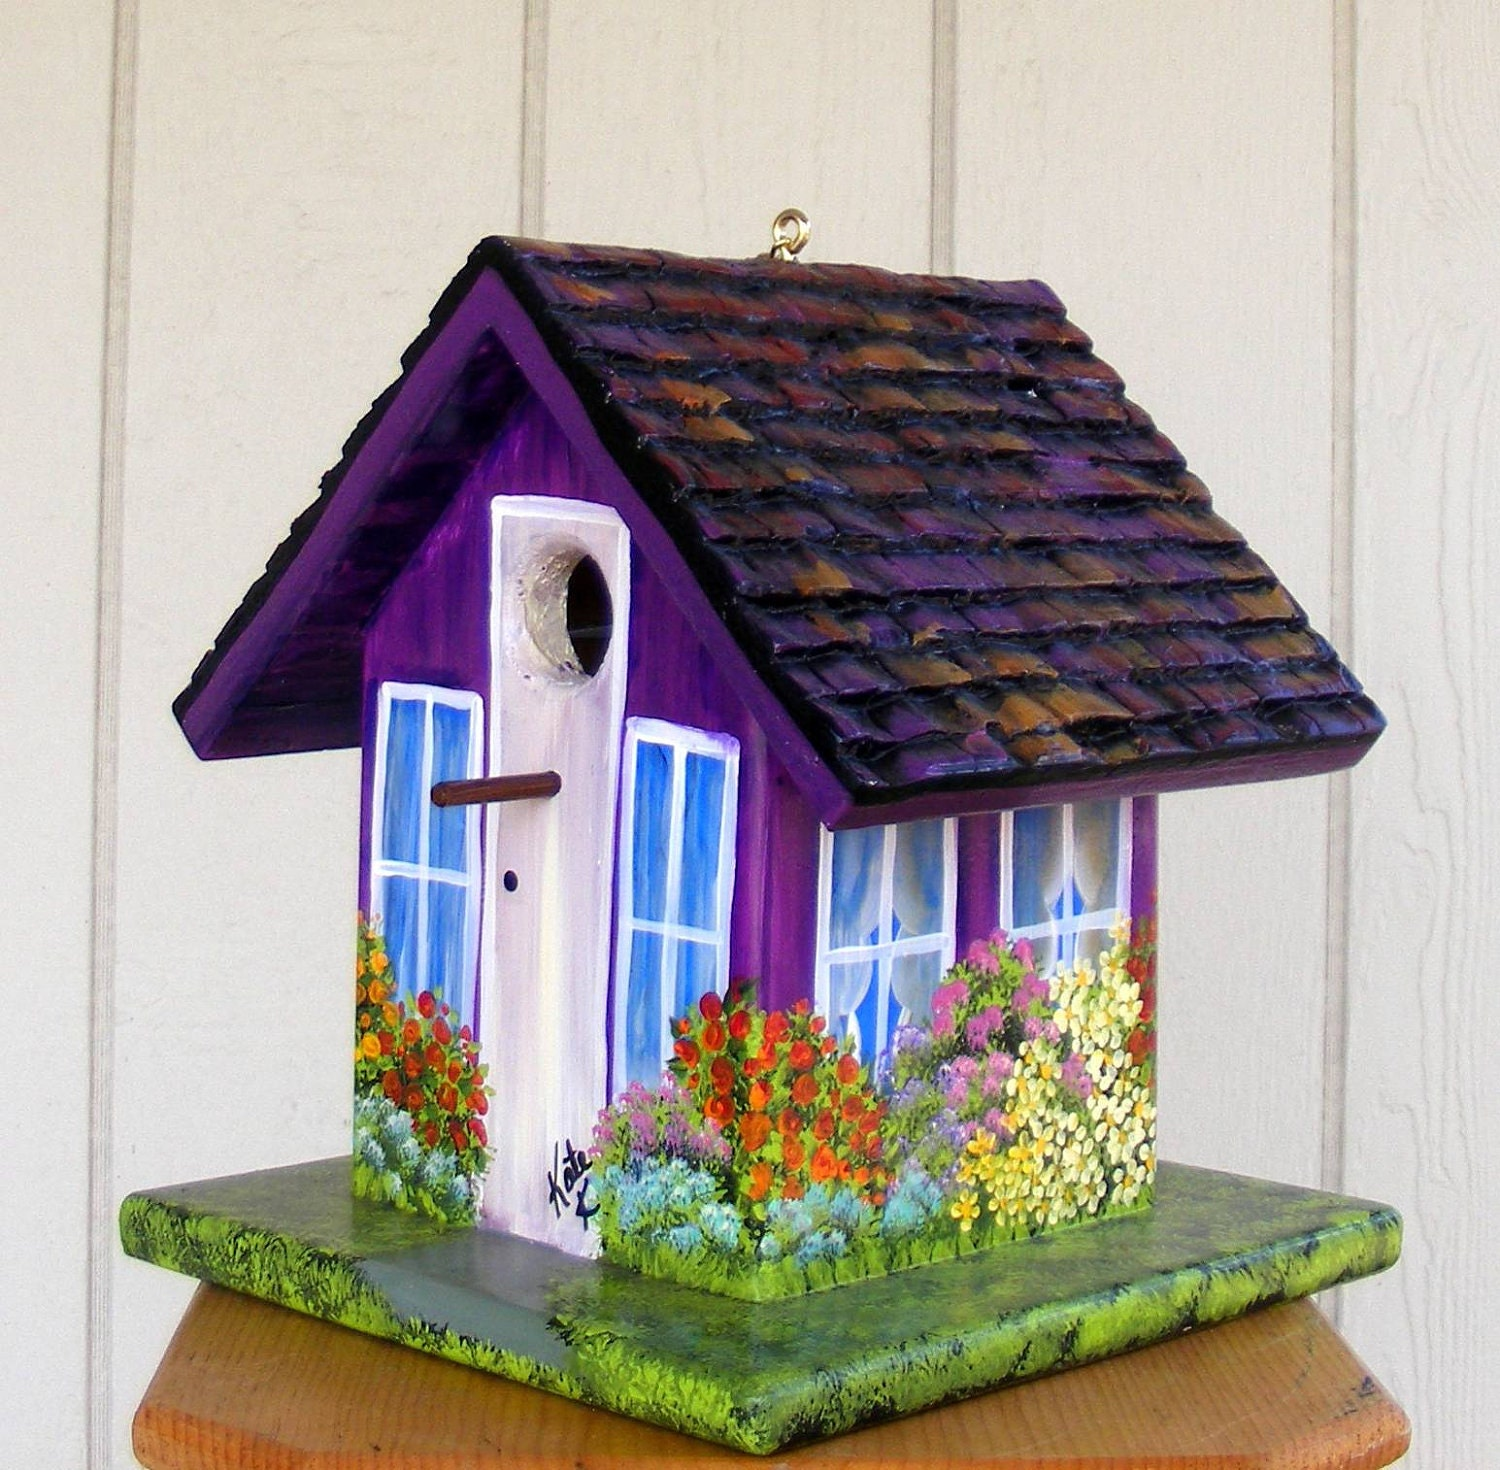 Birdhouse Handcrafted And Hand Painted Purple With A Lot Of